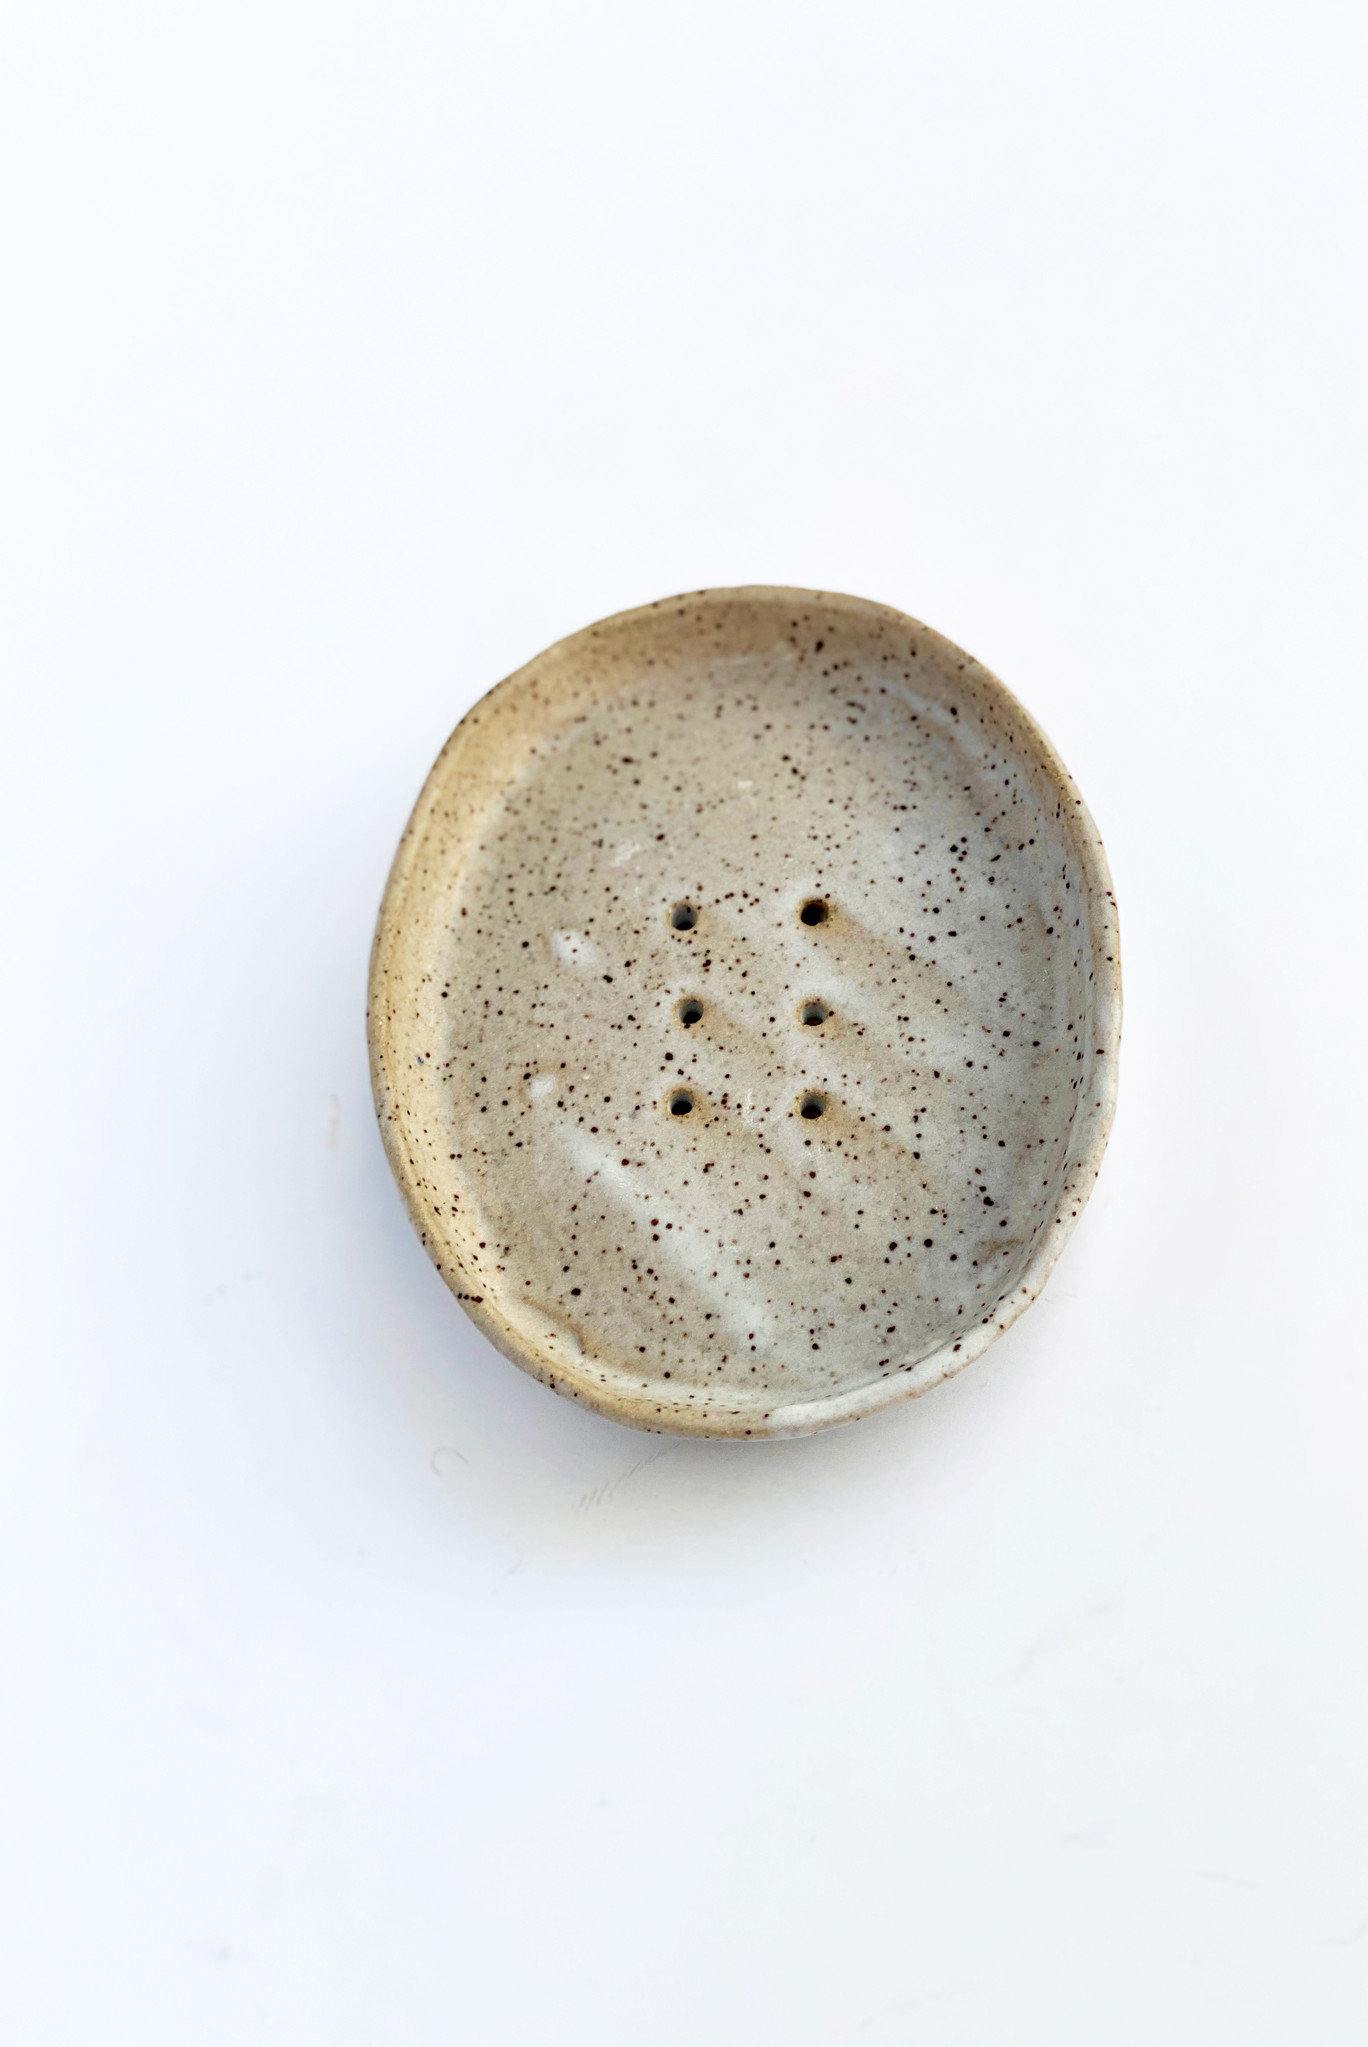 Alice Cheng Studio Neutral Speckled Soap Dishes